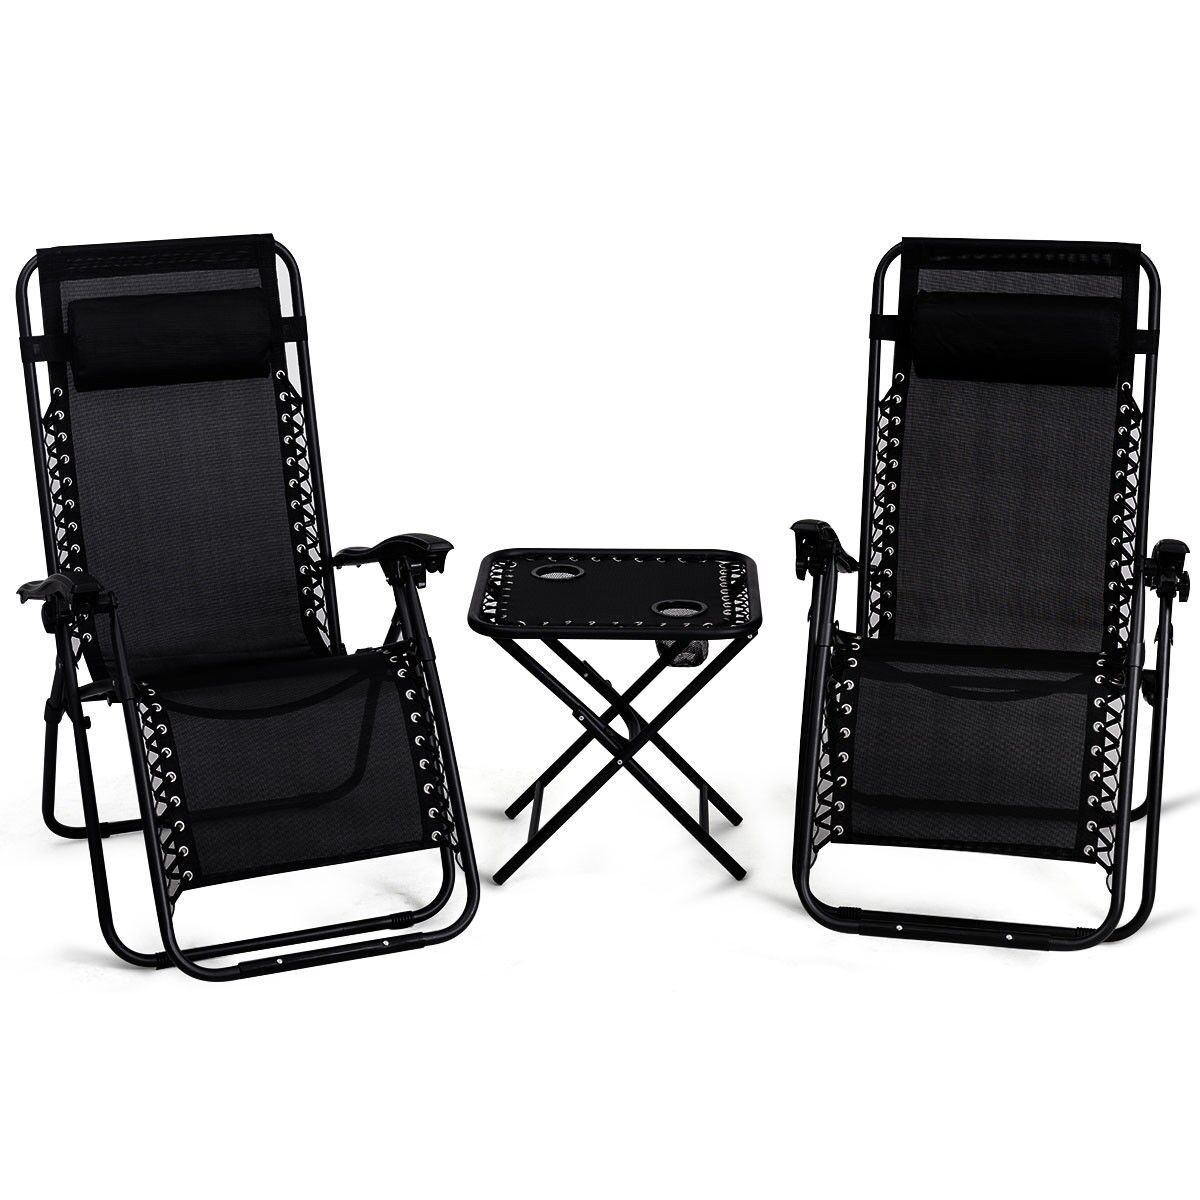 Details About Chaise Lounge Set Of 3 Cushion Patio Chairs Table Recliner Folding Zero Gravity